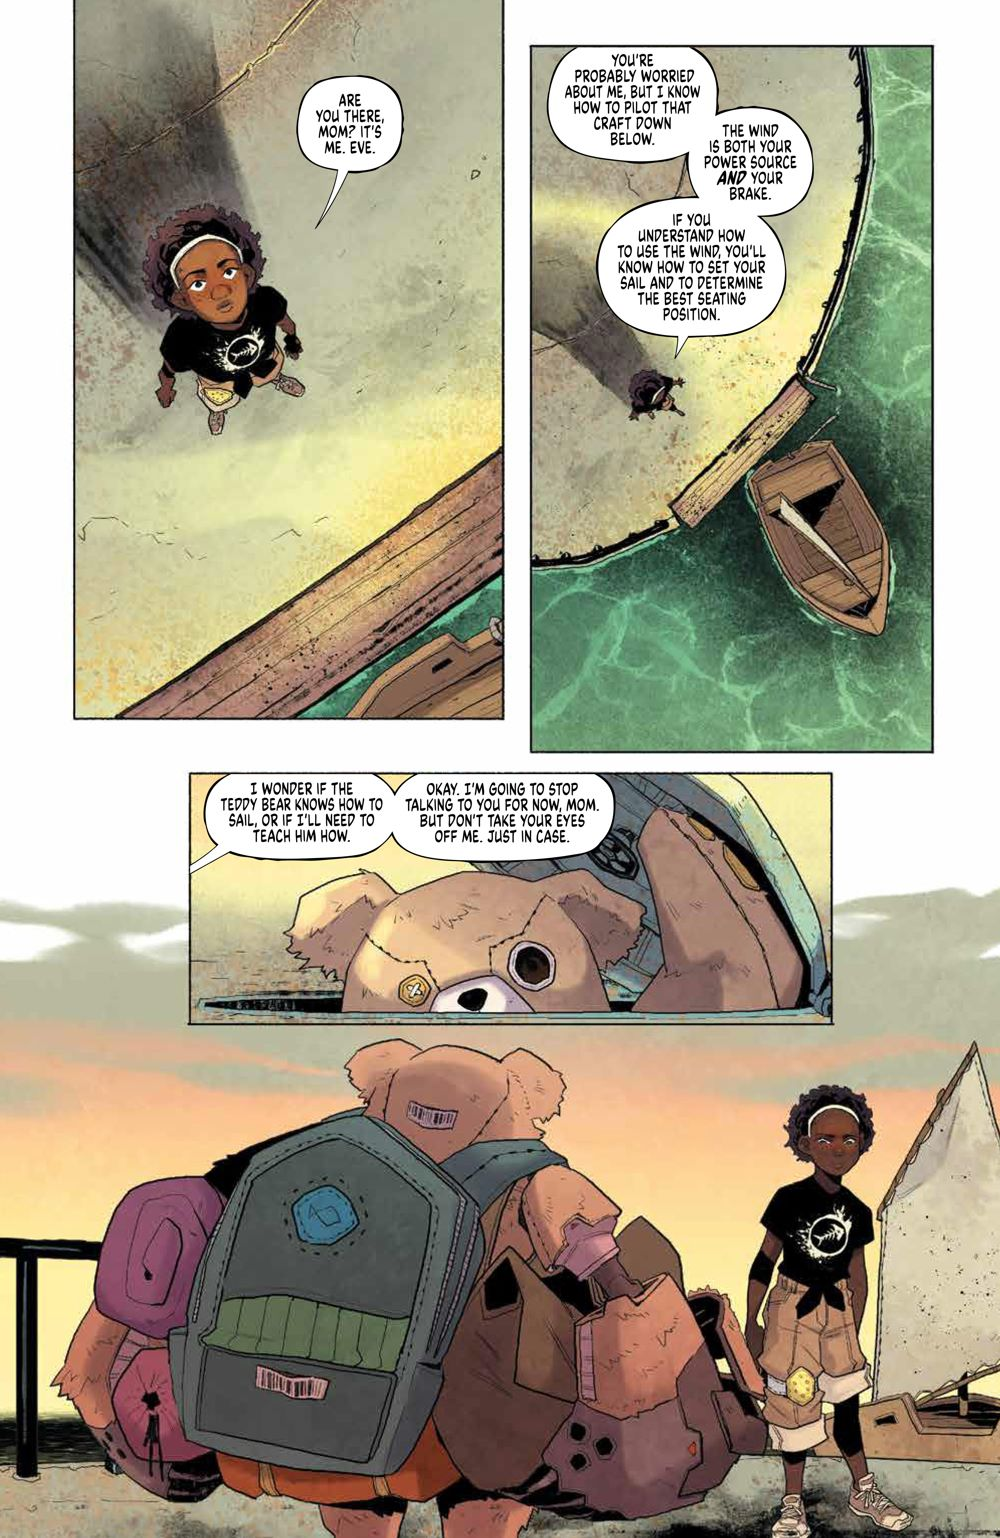 Eve_002_PRESS_8-1 ComicList Previews: EVE #2 (OF 5)